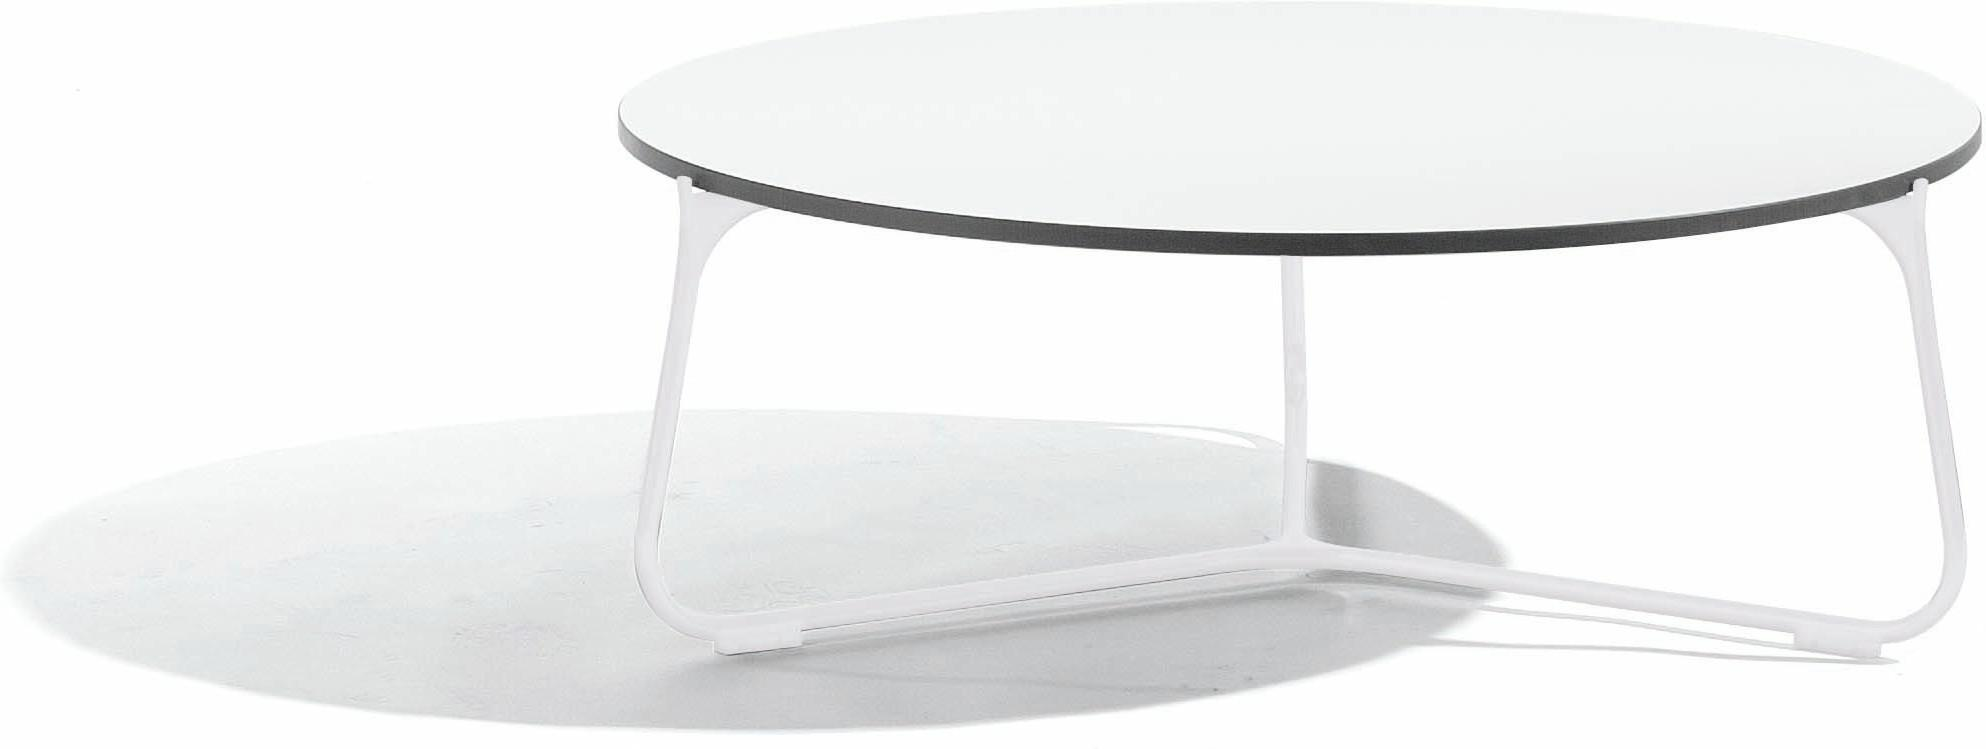 Table basse Mood - blanc - trespa blanc - 80